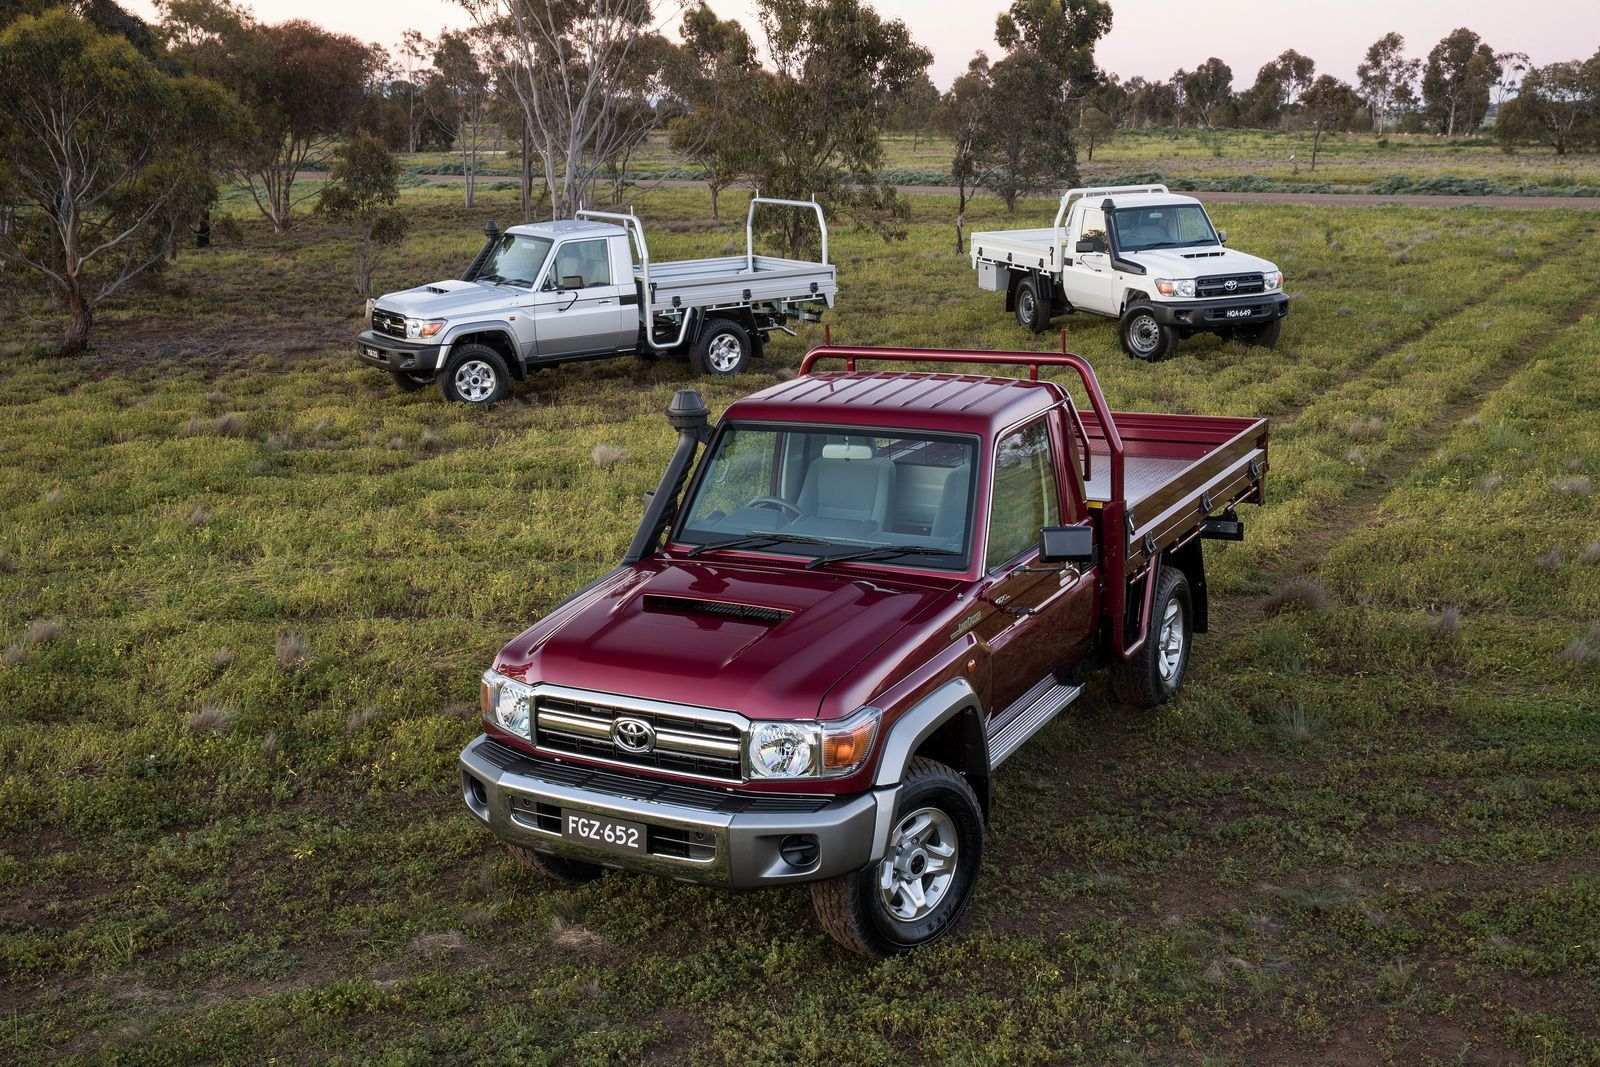 2016 Toyota LandCruiser 70 Series Single Cab Chassis Range - GXL (front), GX (left rear) and Workmate